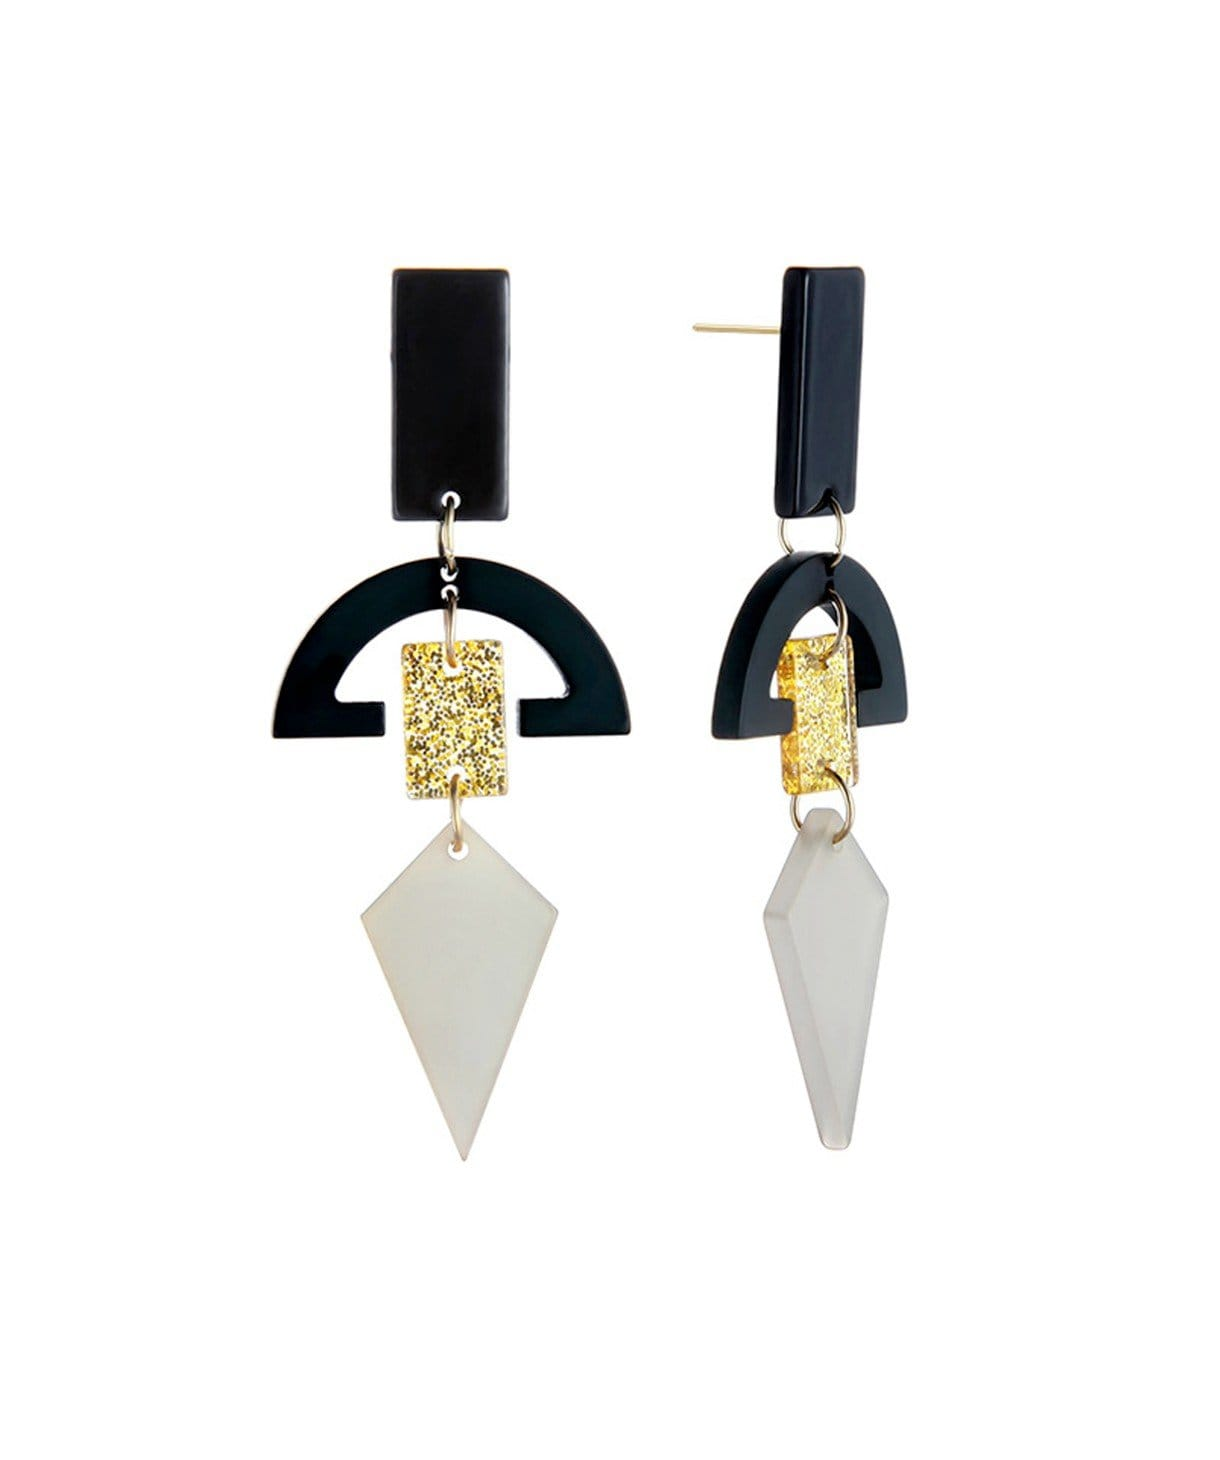 Geometric Acrylic Earrings - Uptownie